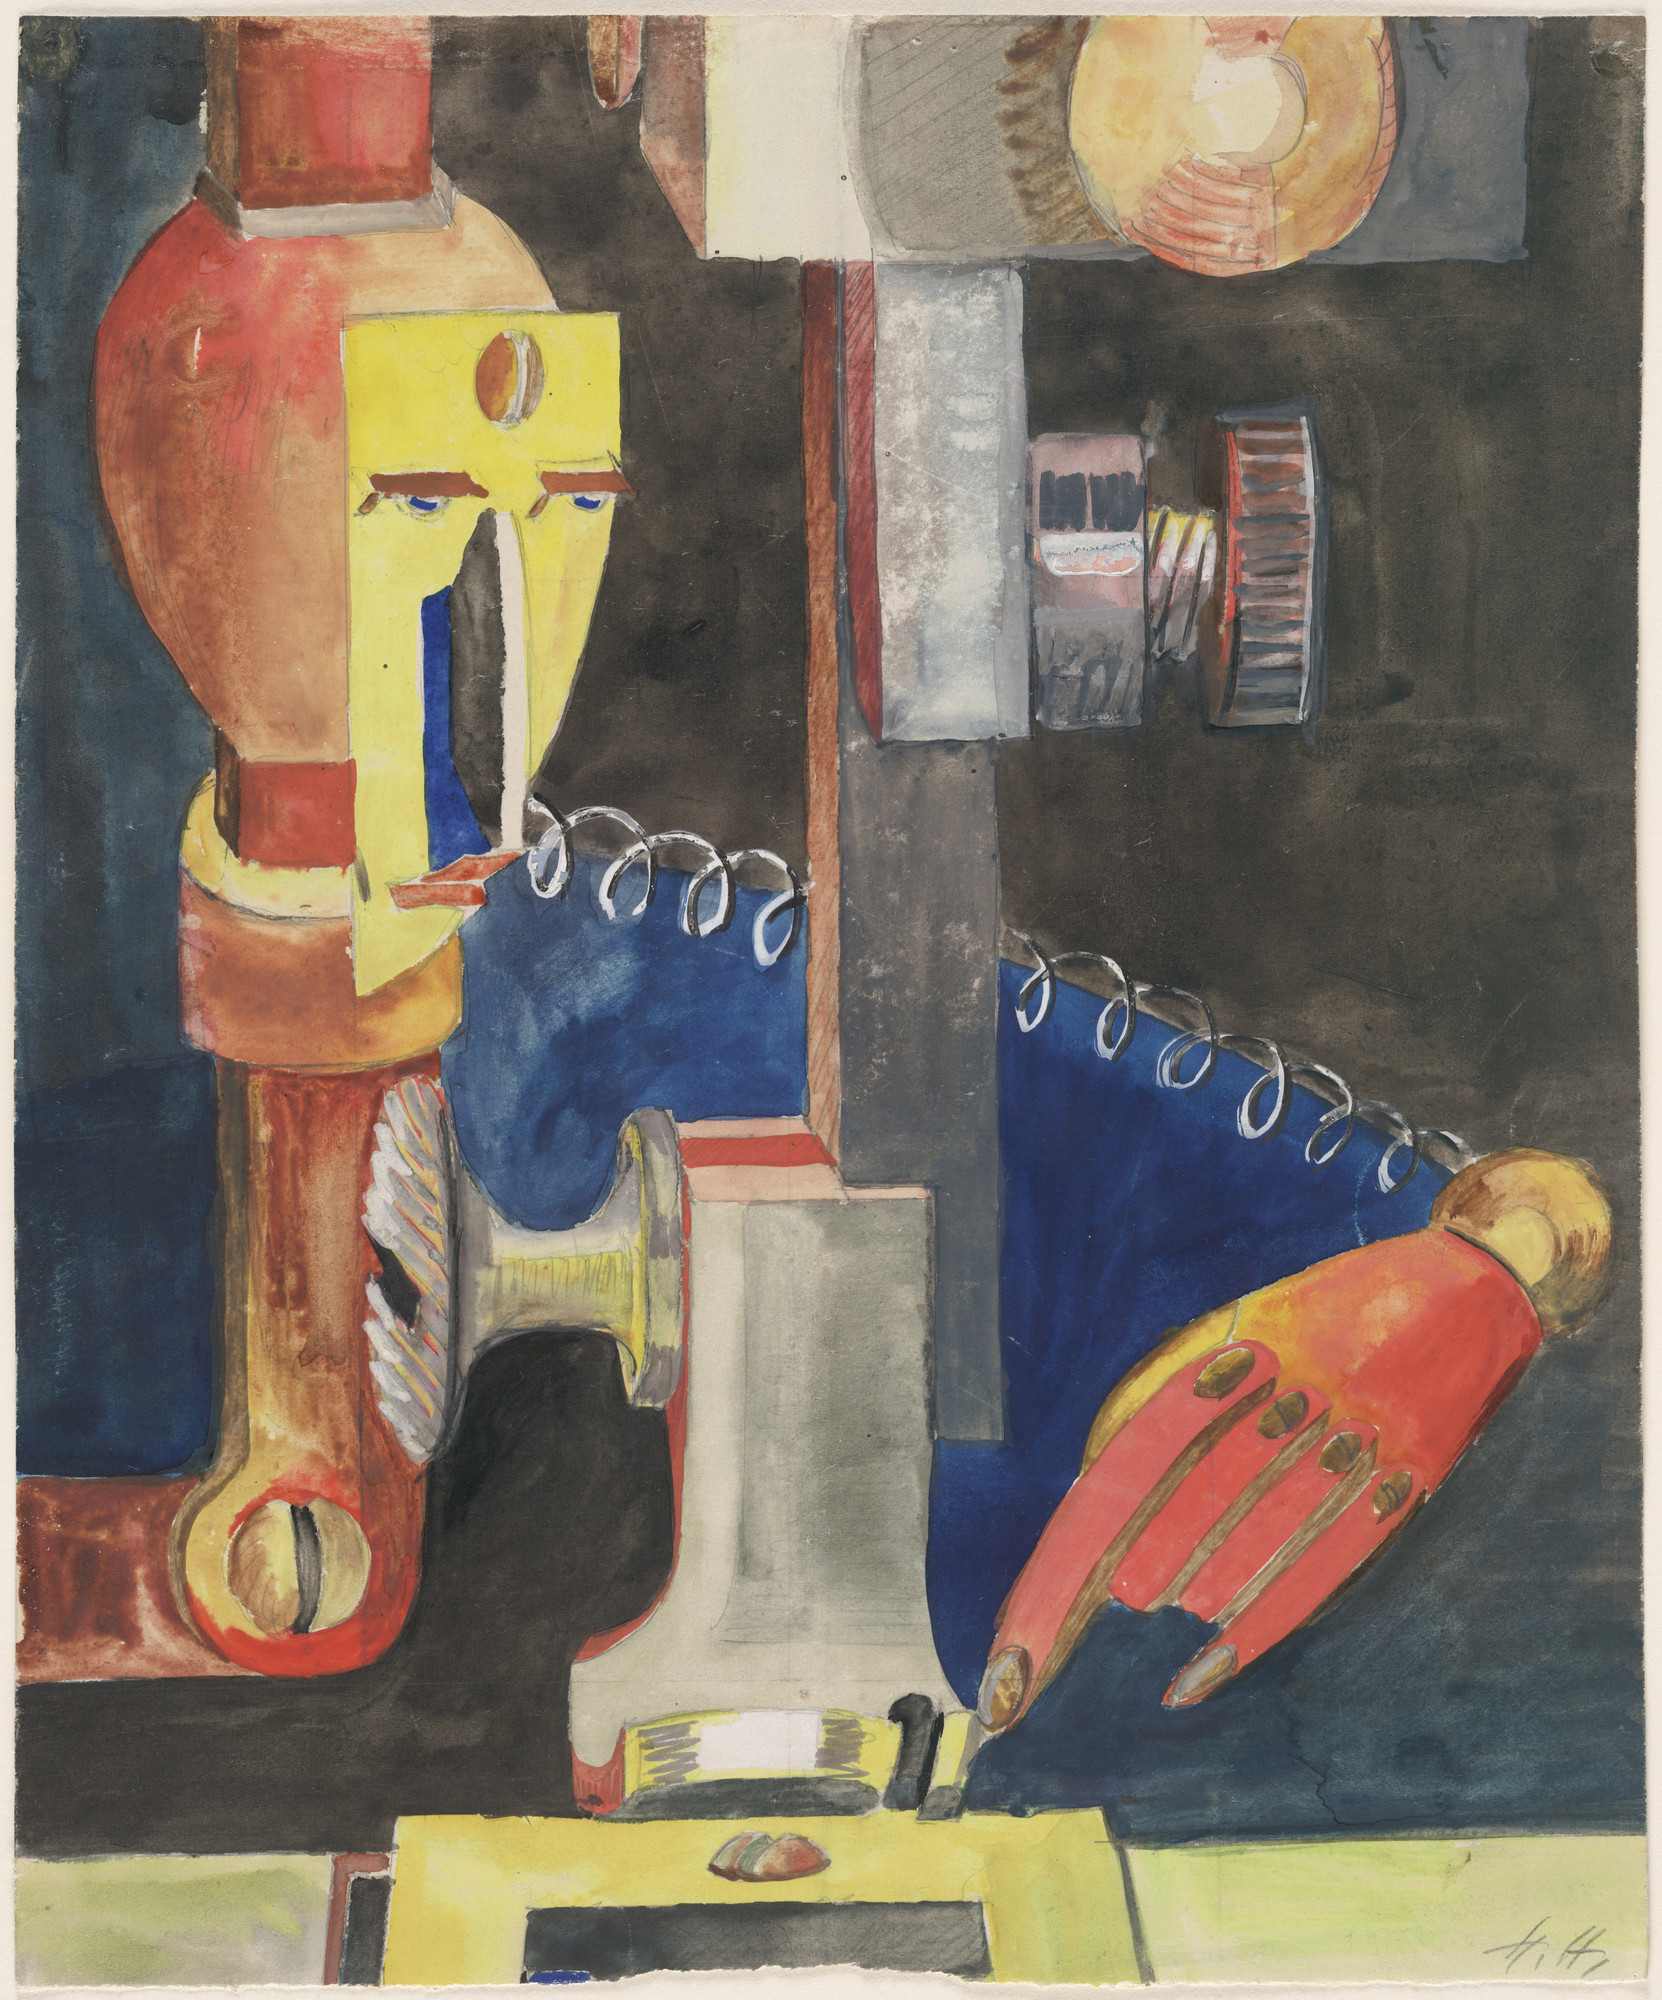 Hannah Höch. Study for Man and Machine (Skizze zu Mensch und Maschine). 1921